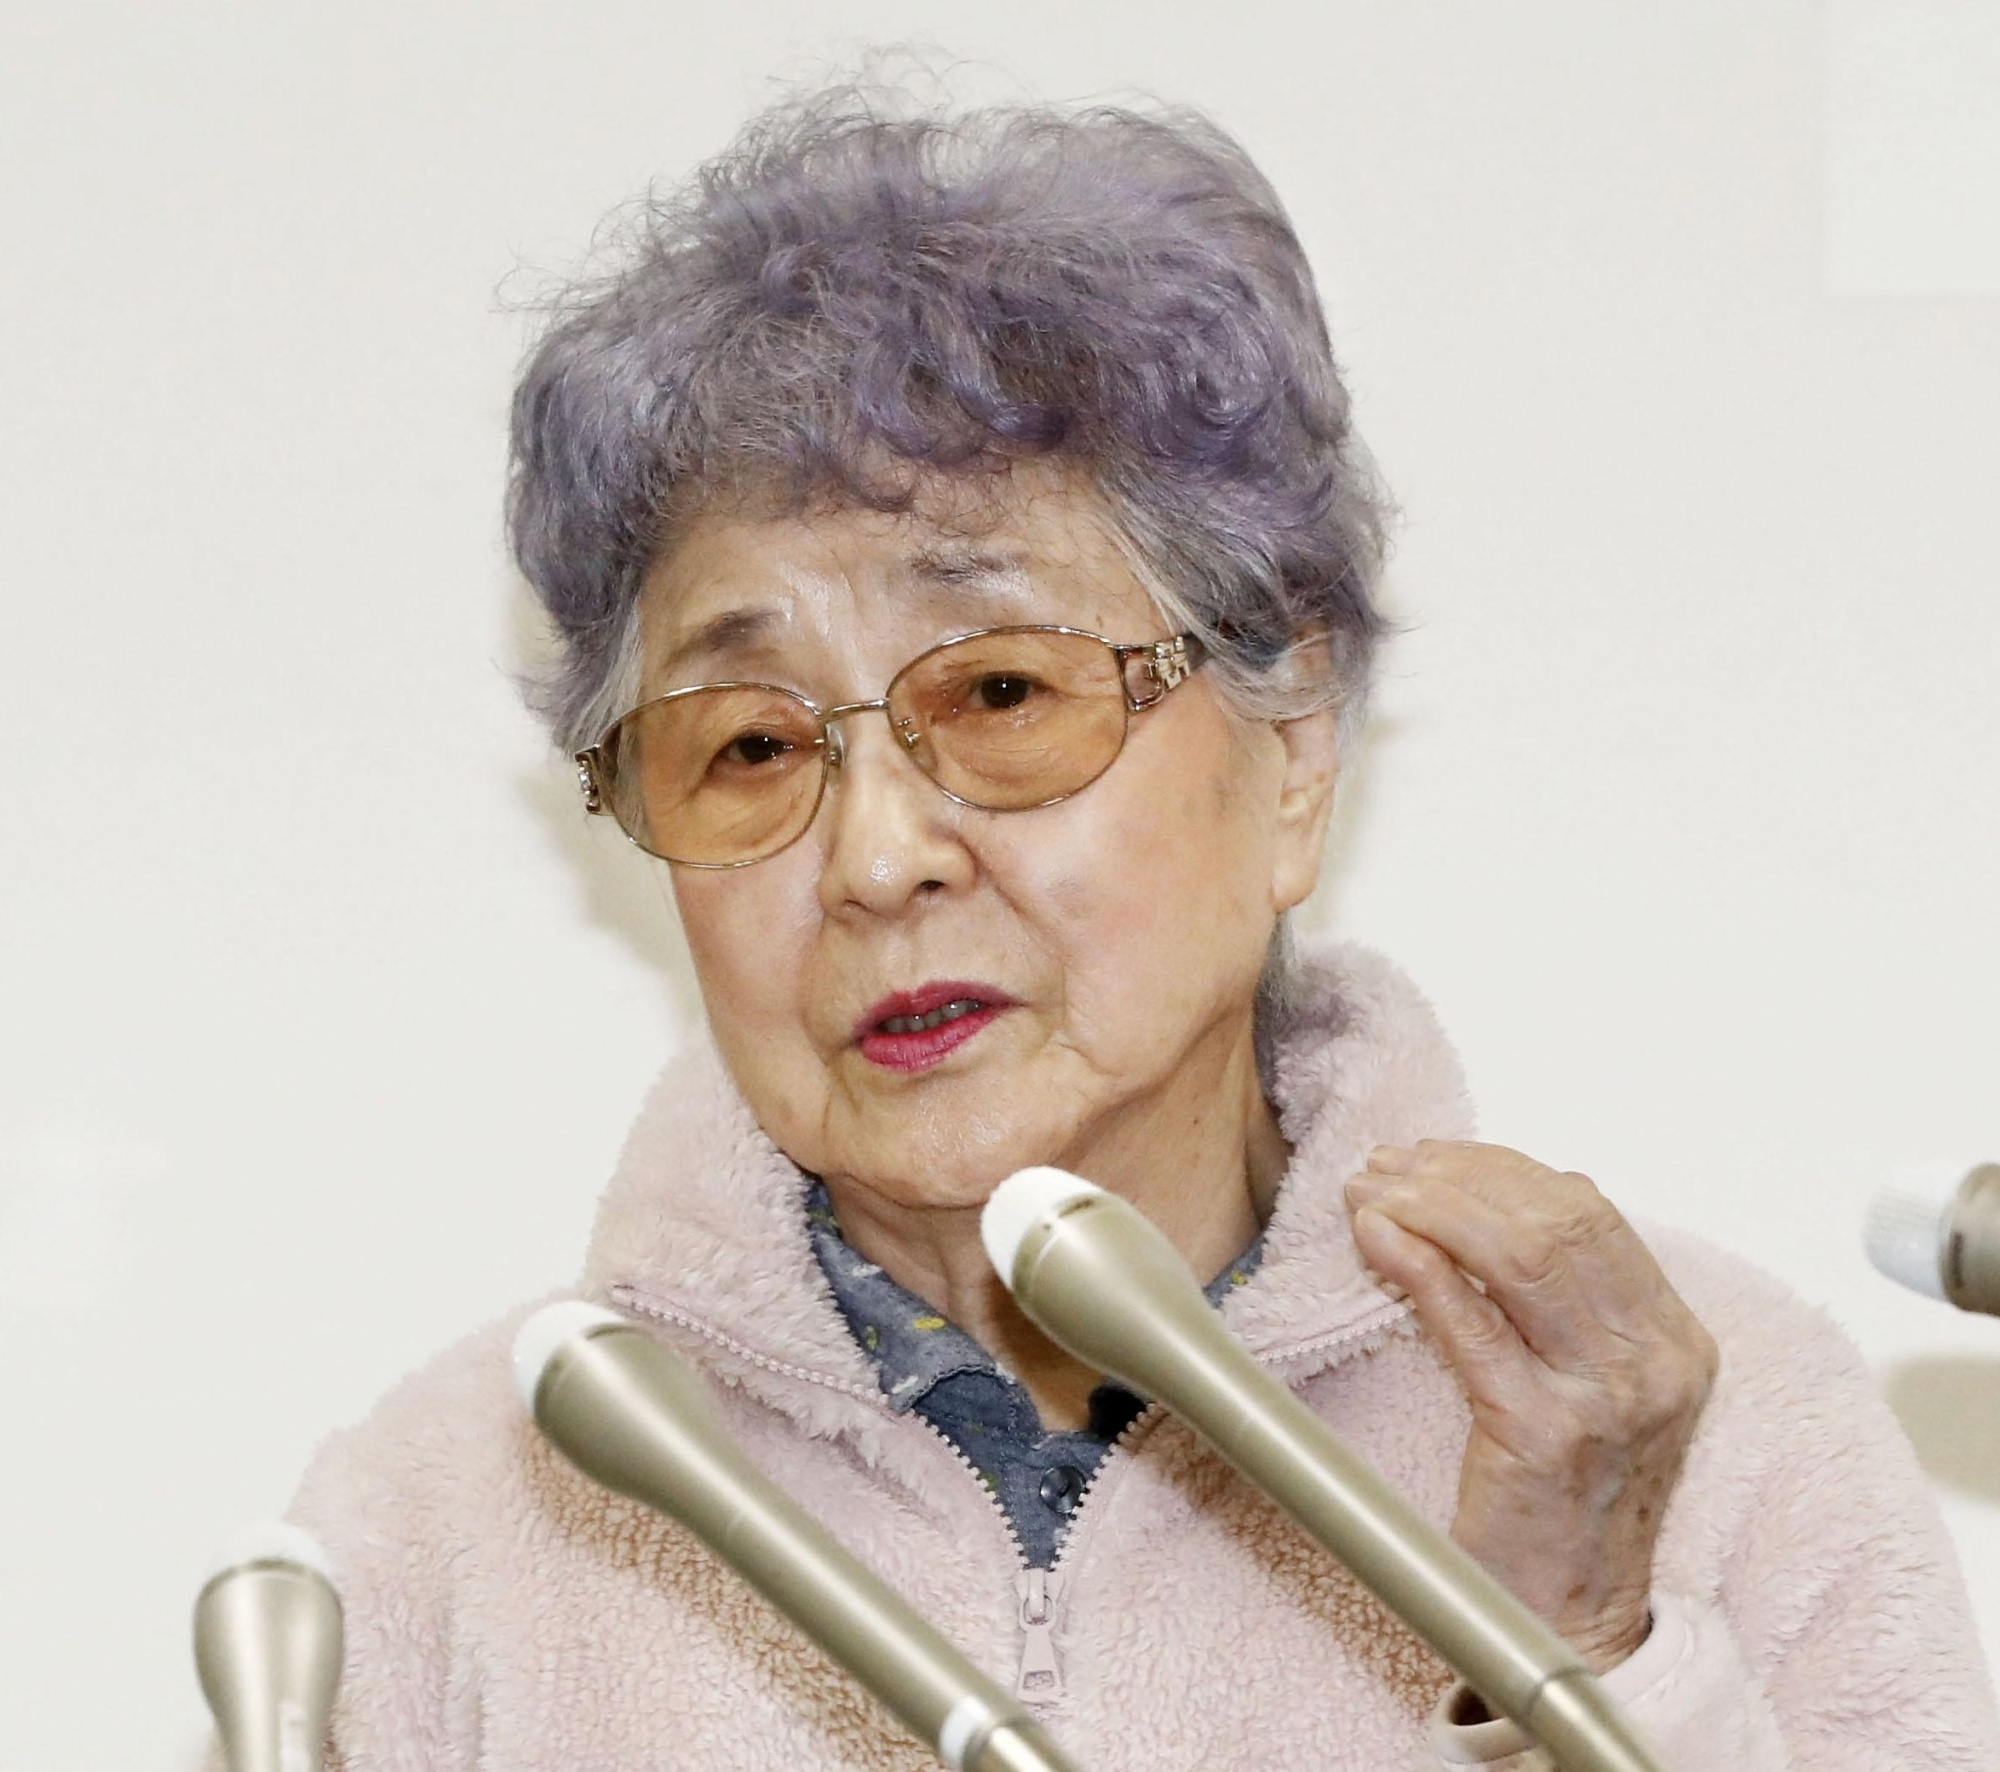 Sakie Yokota, the 83-year-old mother of Yokota Megumi, who was kidnapped by North Korean agents in 1977, speaks to reporters Thursday in Kawasaki after the meeting between North Korean leader Kim Jong Un and U.S. President Donald Trump ended with no tangible achievements earlier in the day. | KYODO